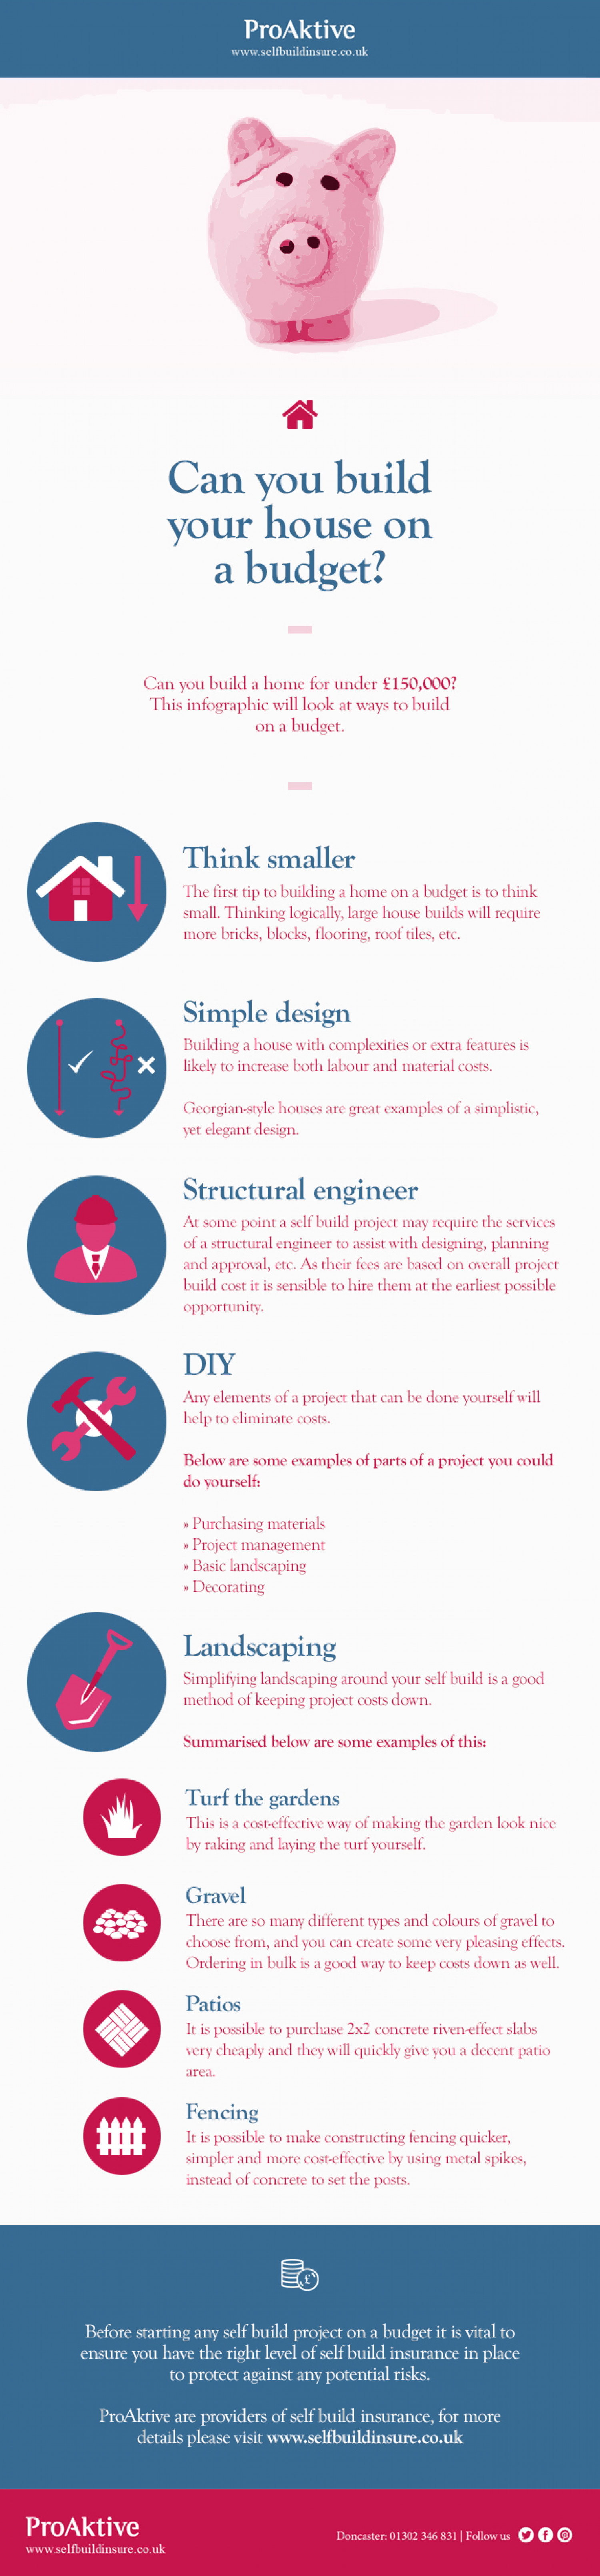 Can You Build Your House on a Budget? Infographic